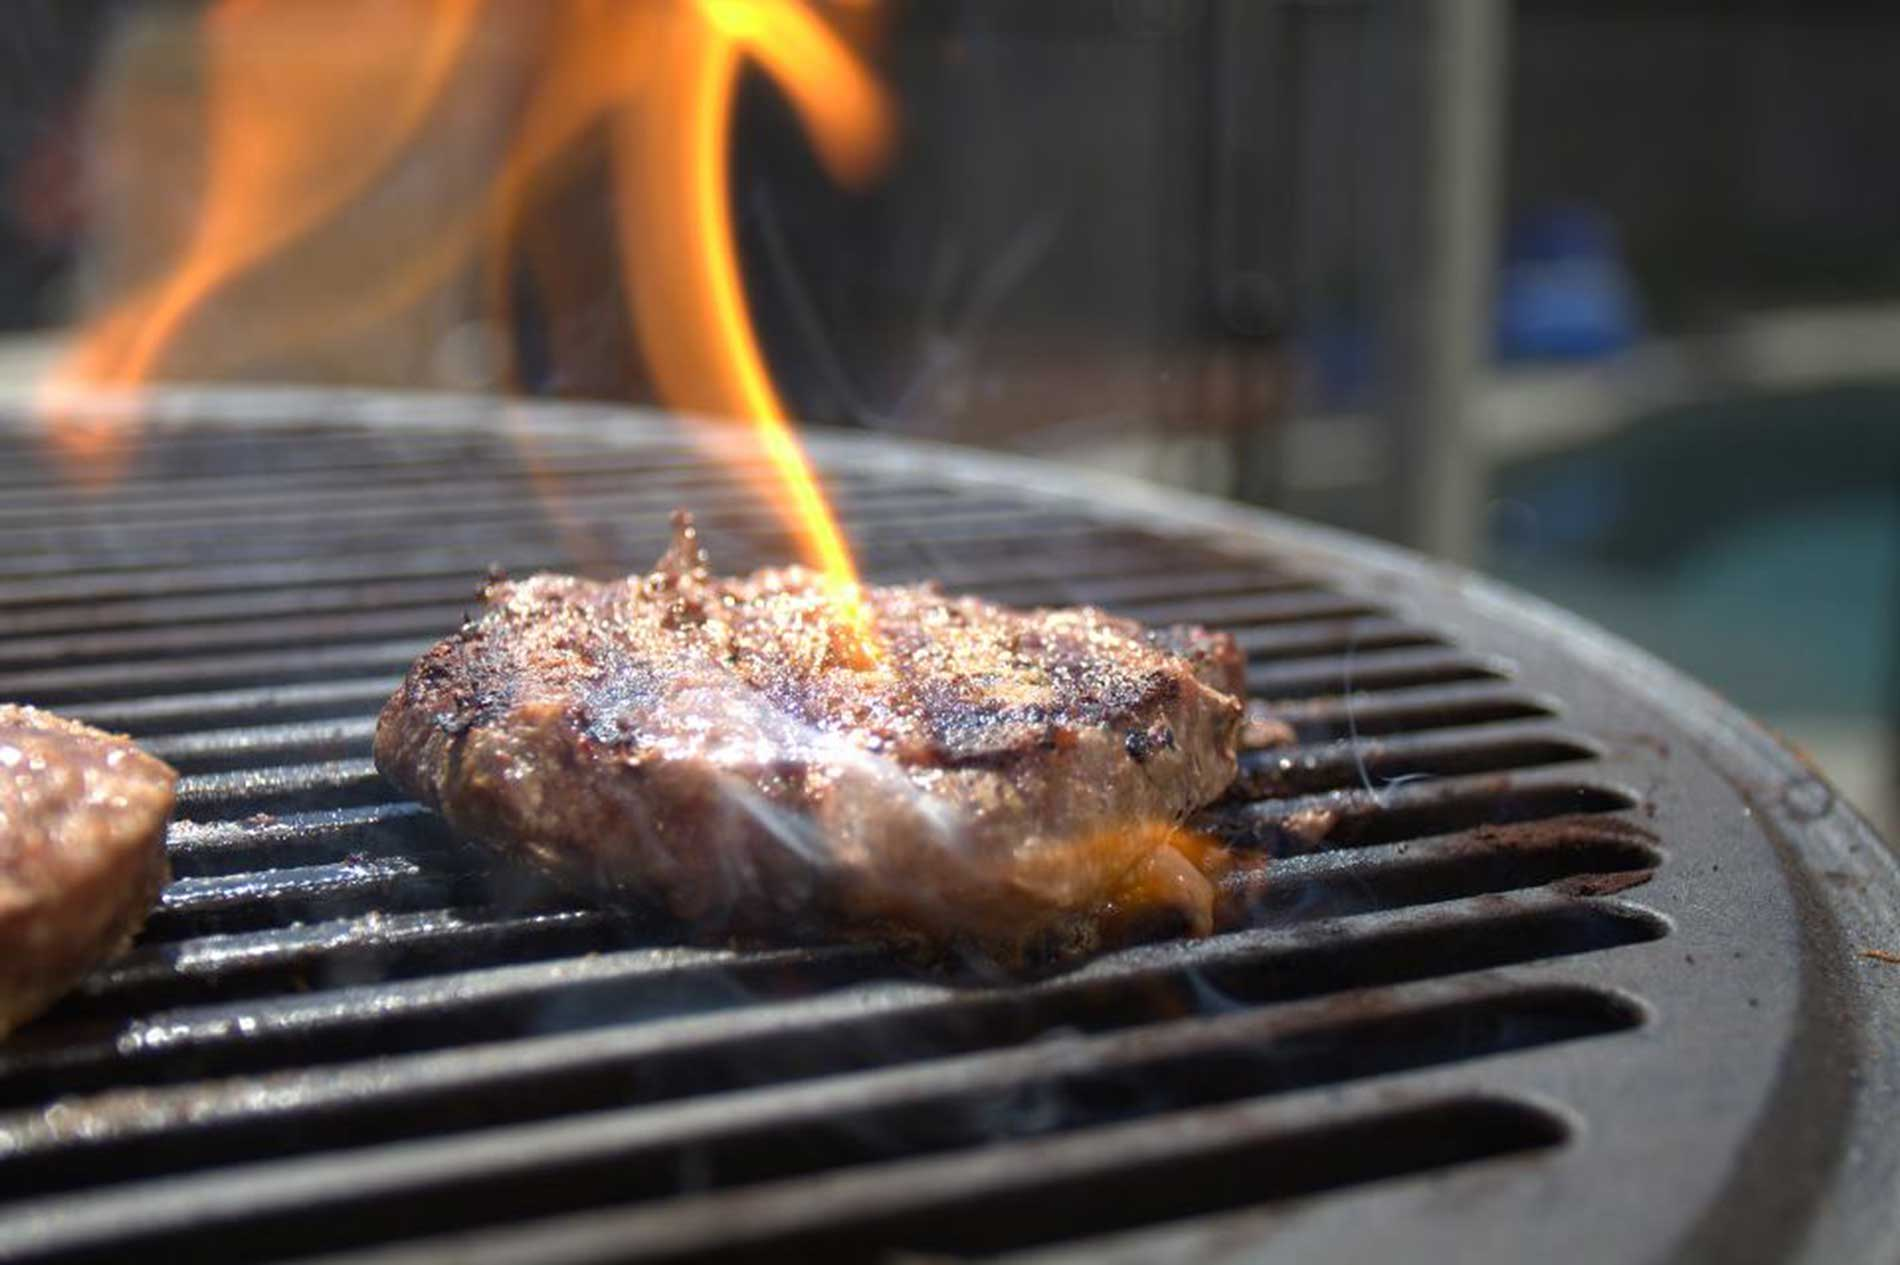 Cook Your BUBBA burger, Different Ways to Cook Your BUBBA burger